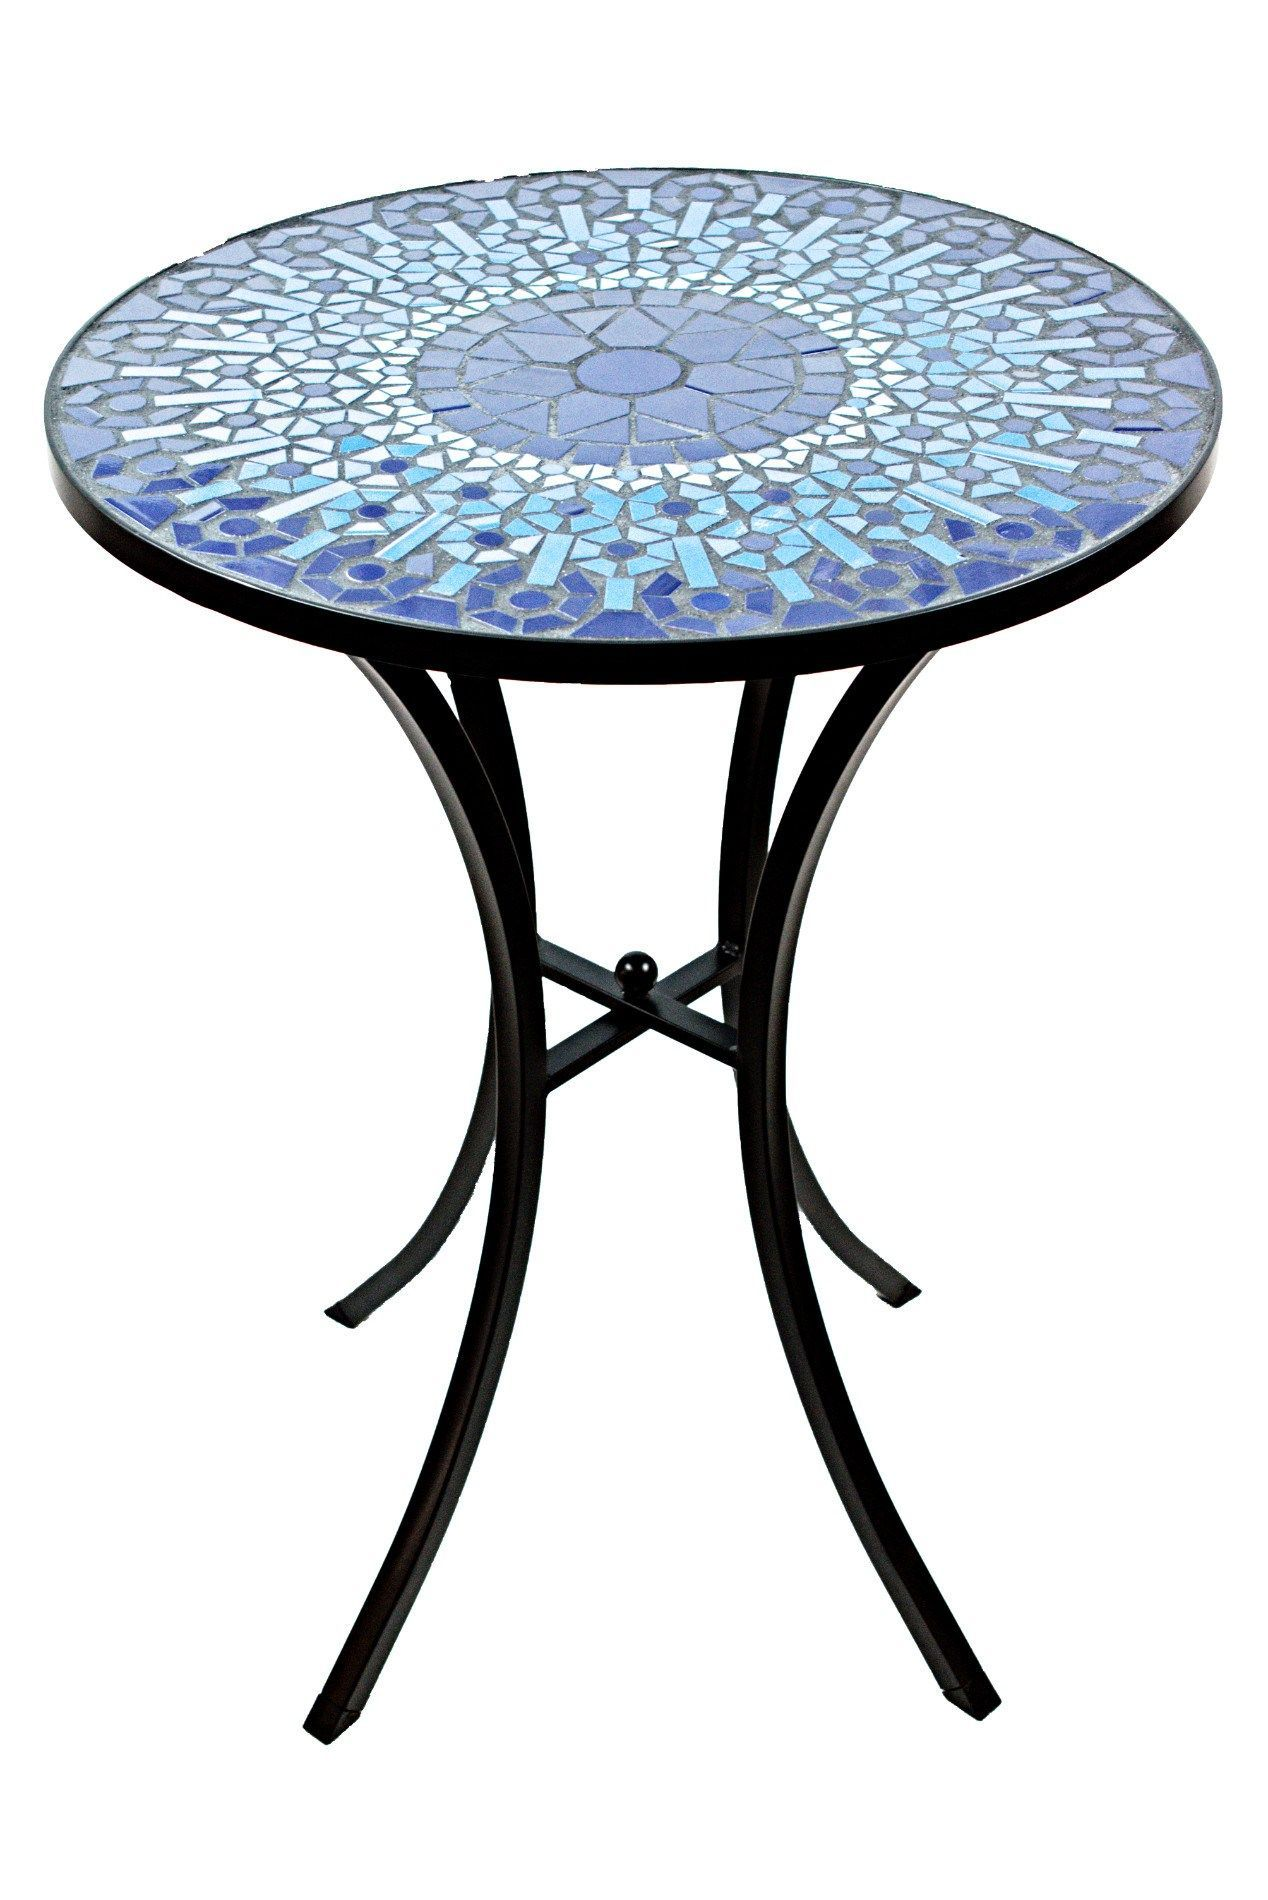 Table Et Chaise Mosaic Mosaic Accent Table Things I Like Pinterest Table